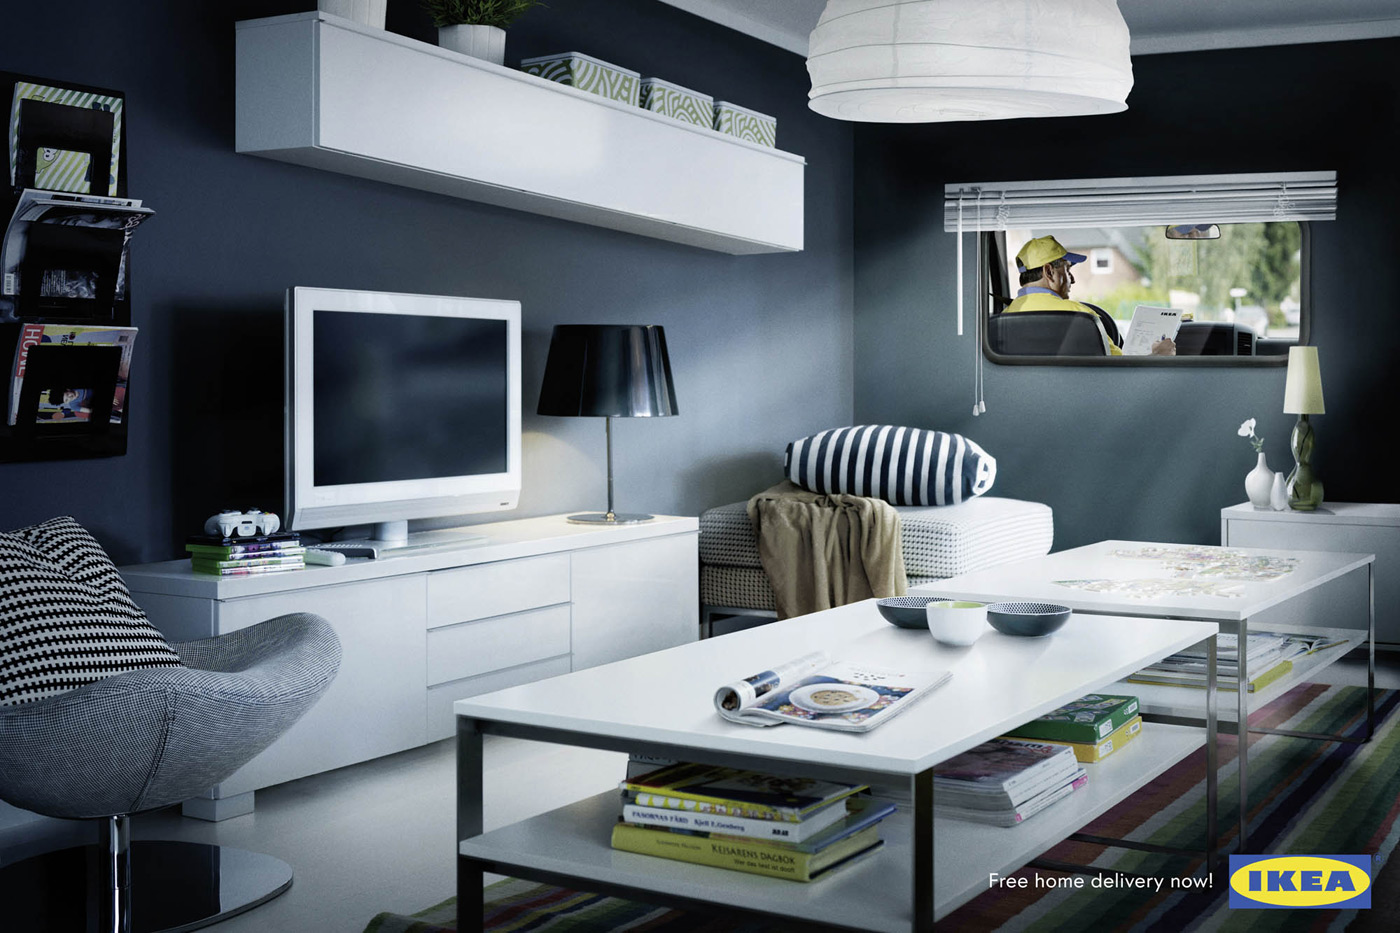 IKEA Print Ad   Living Room